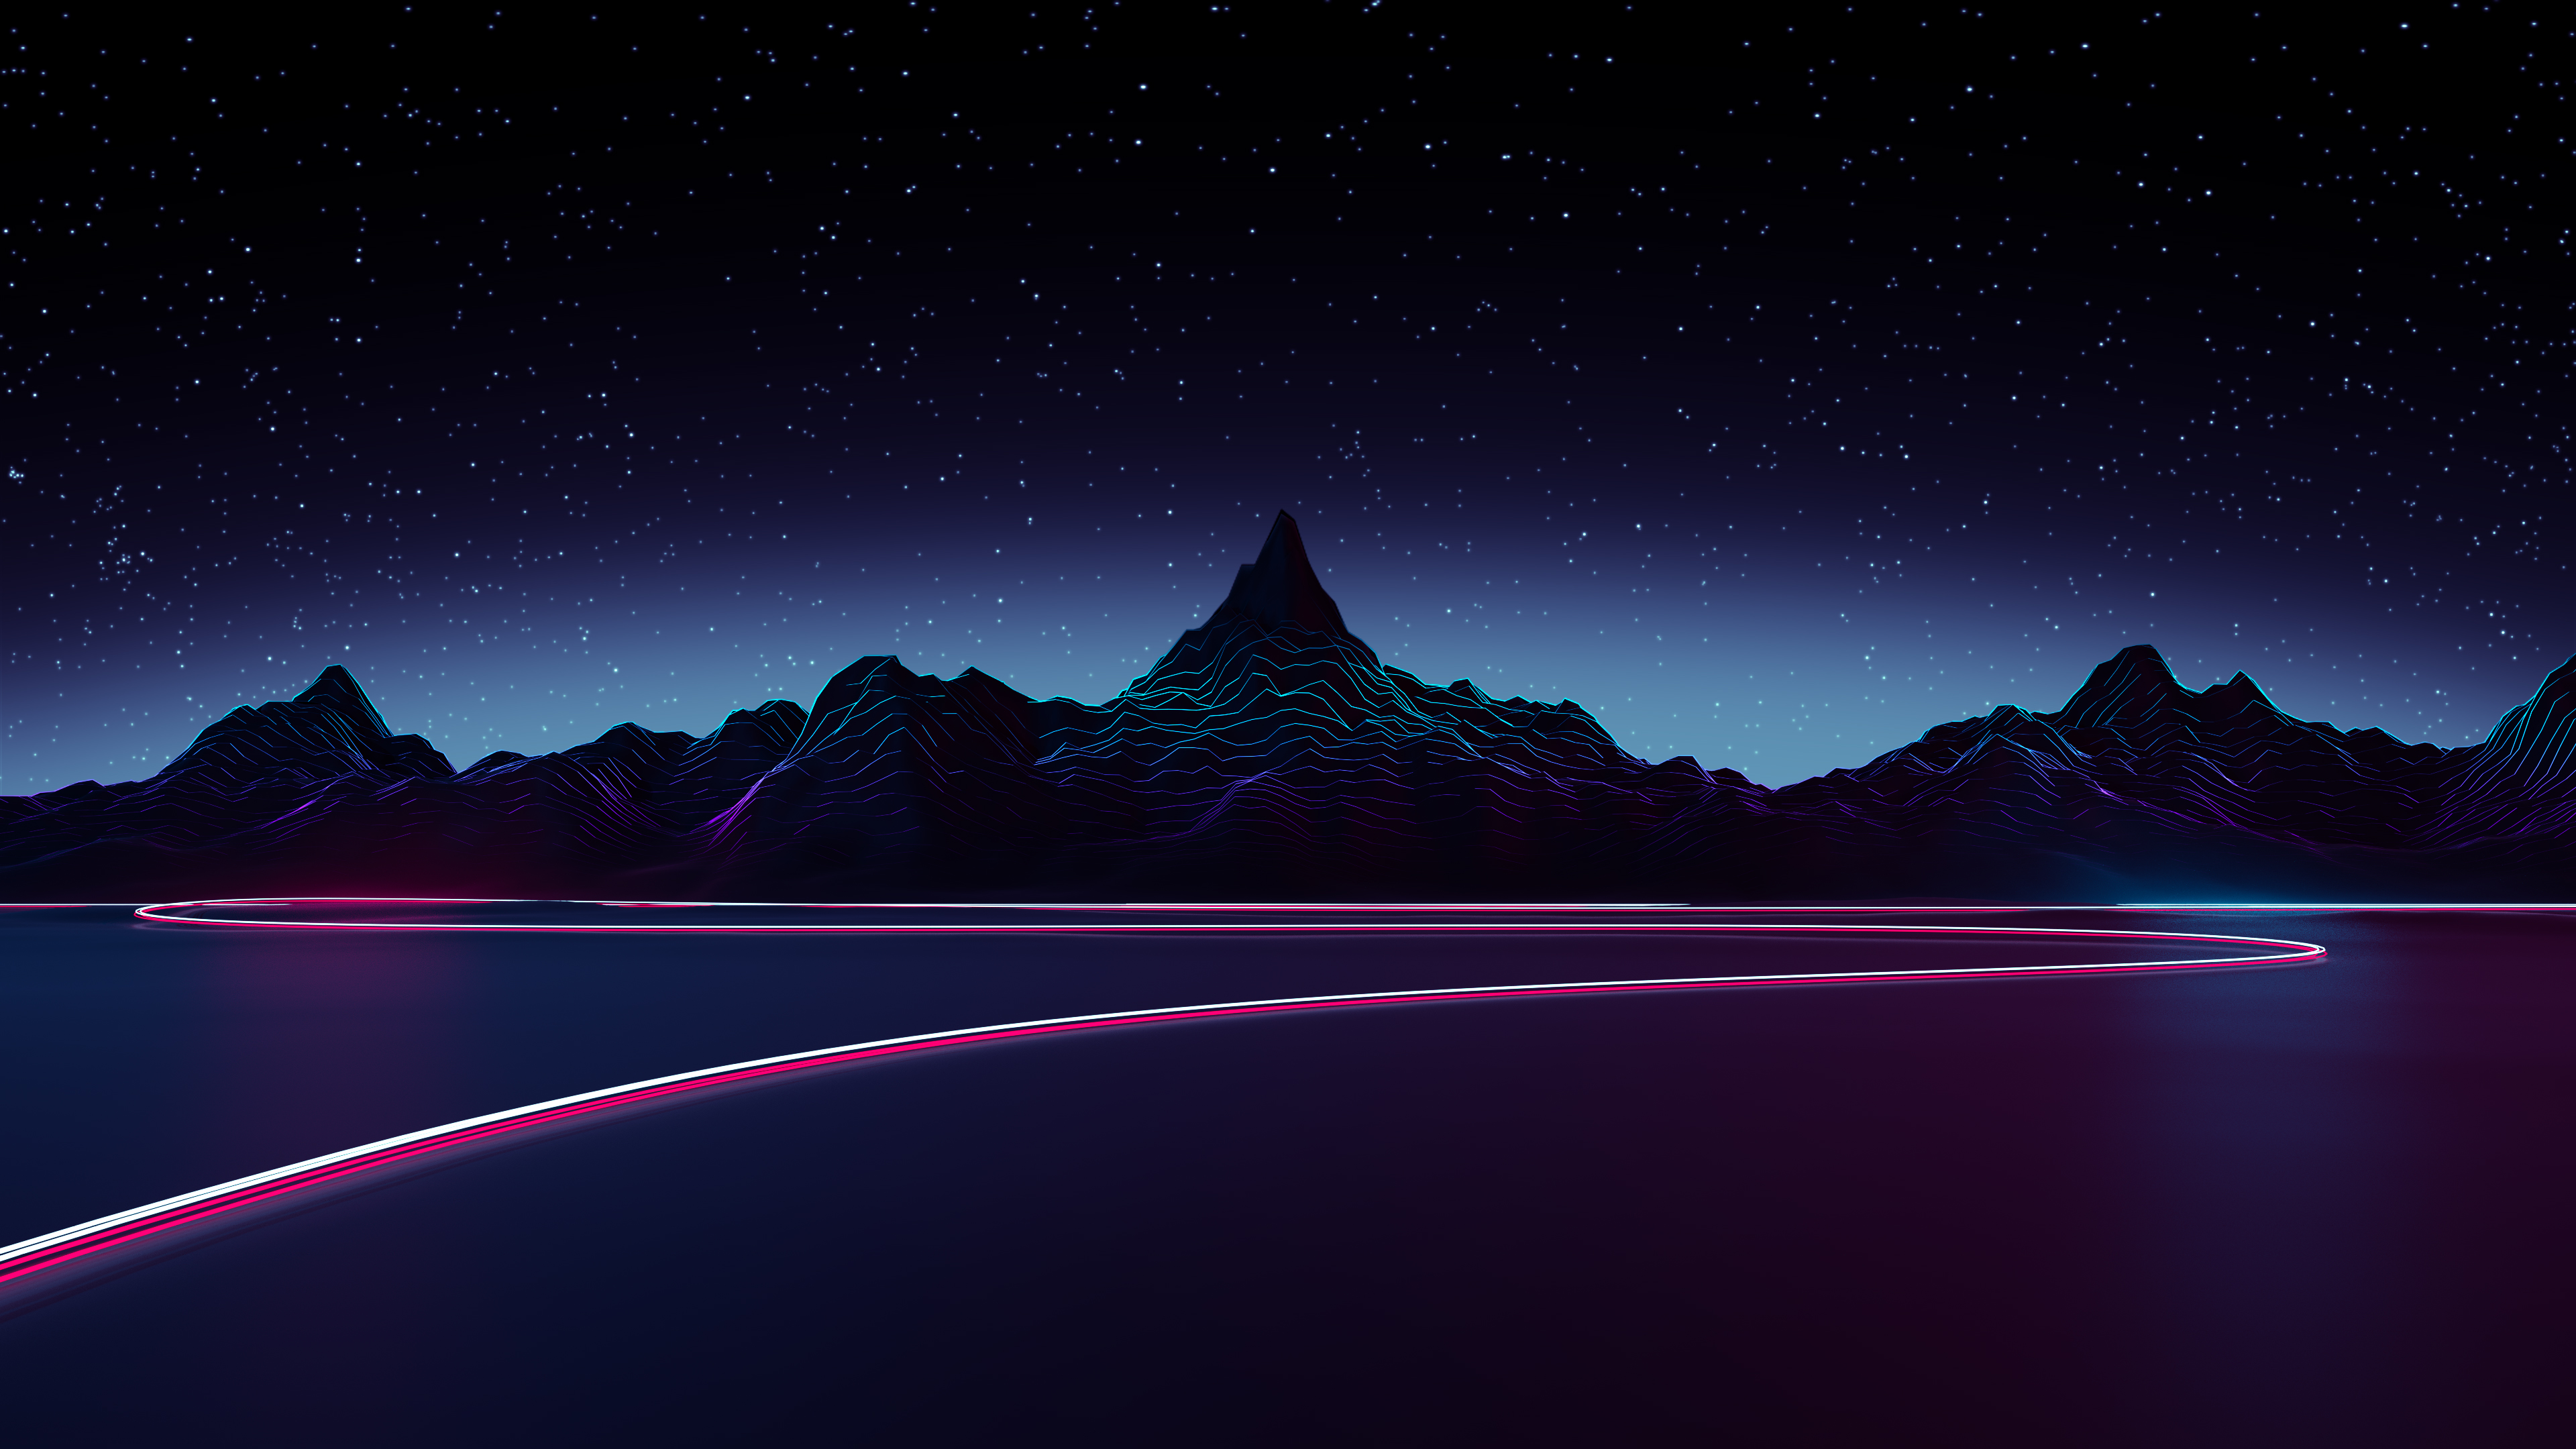 3d Live Wallpaper For Samsung Galaxy Core 2 Highway Animated Wallpaper 4k 3840x2160 By Axiomdesign